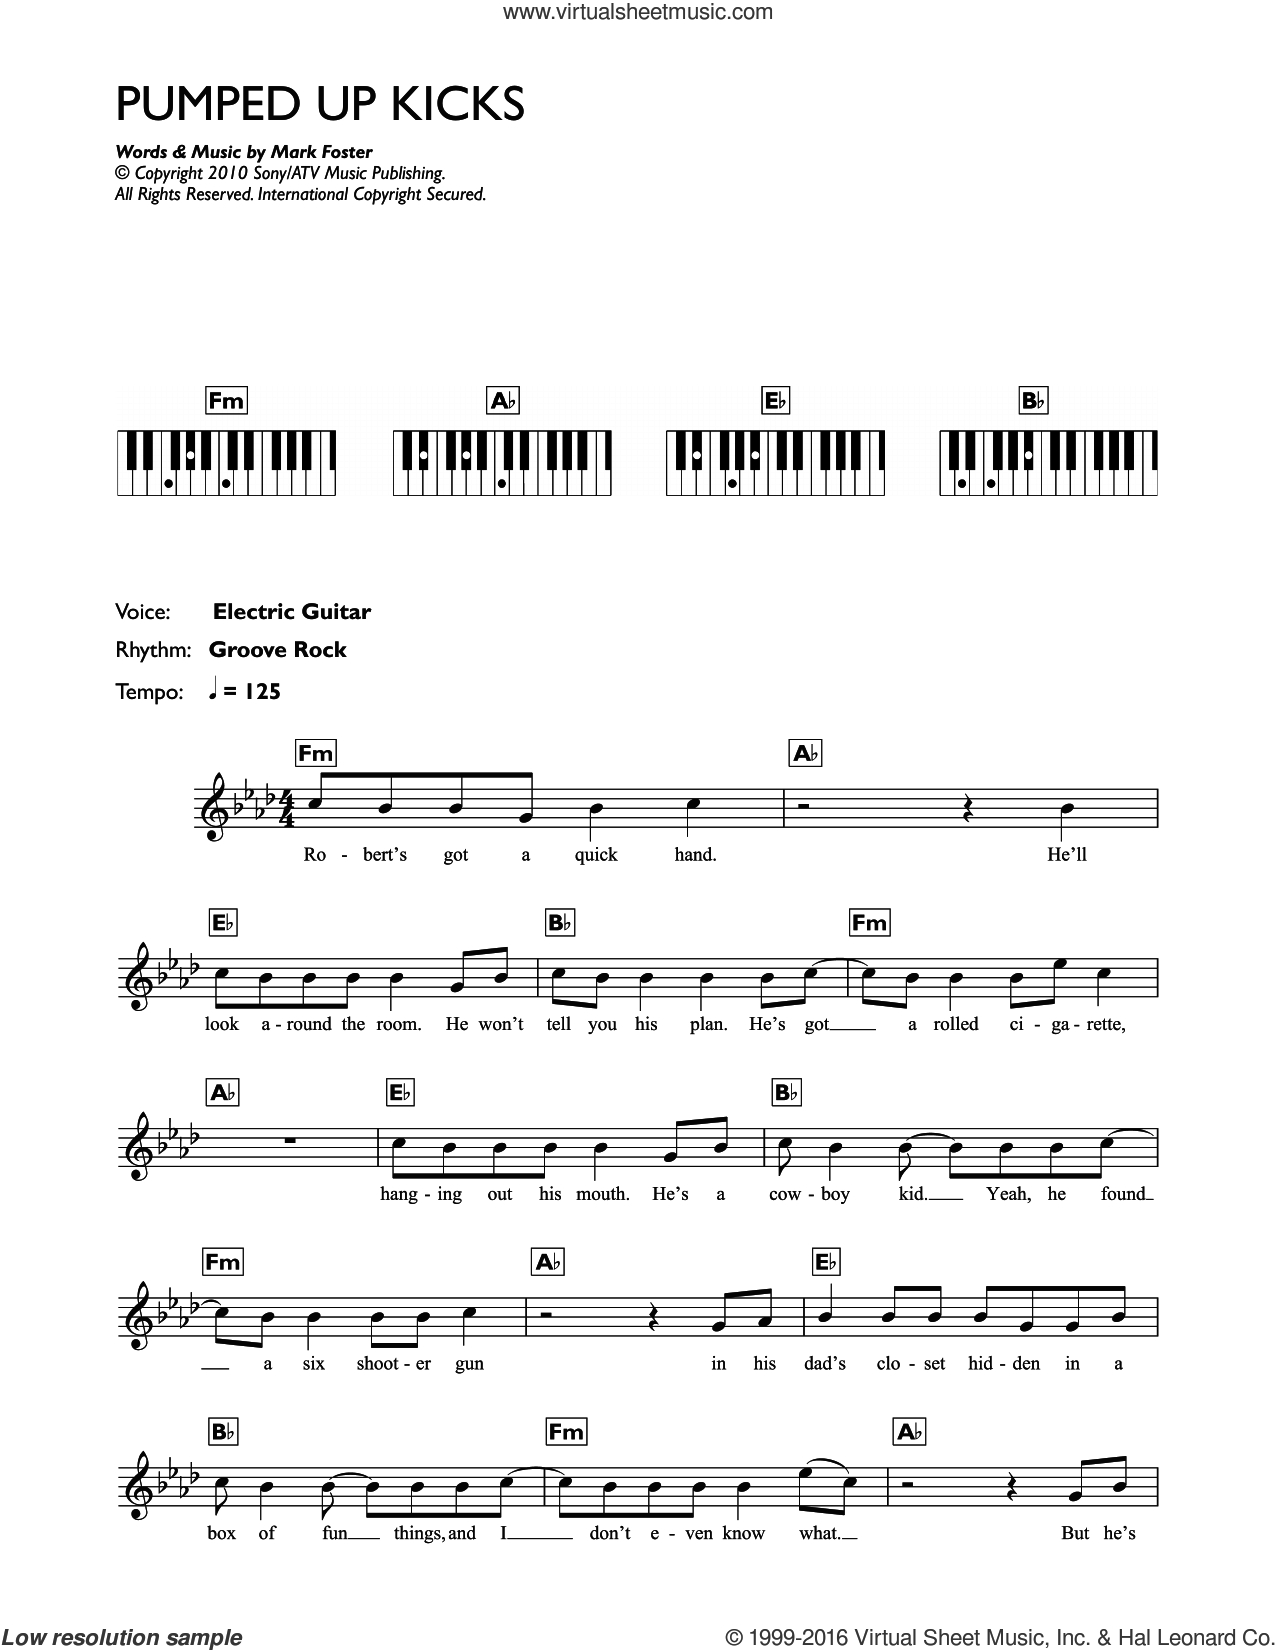 Pumped Up Kicks Chords People Pumped Up Kicks Sheet Music For Piano Solo Chords Lyrics Melody